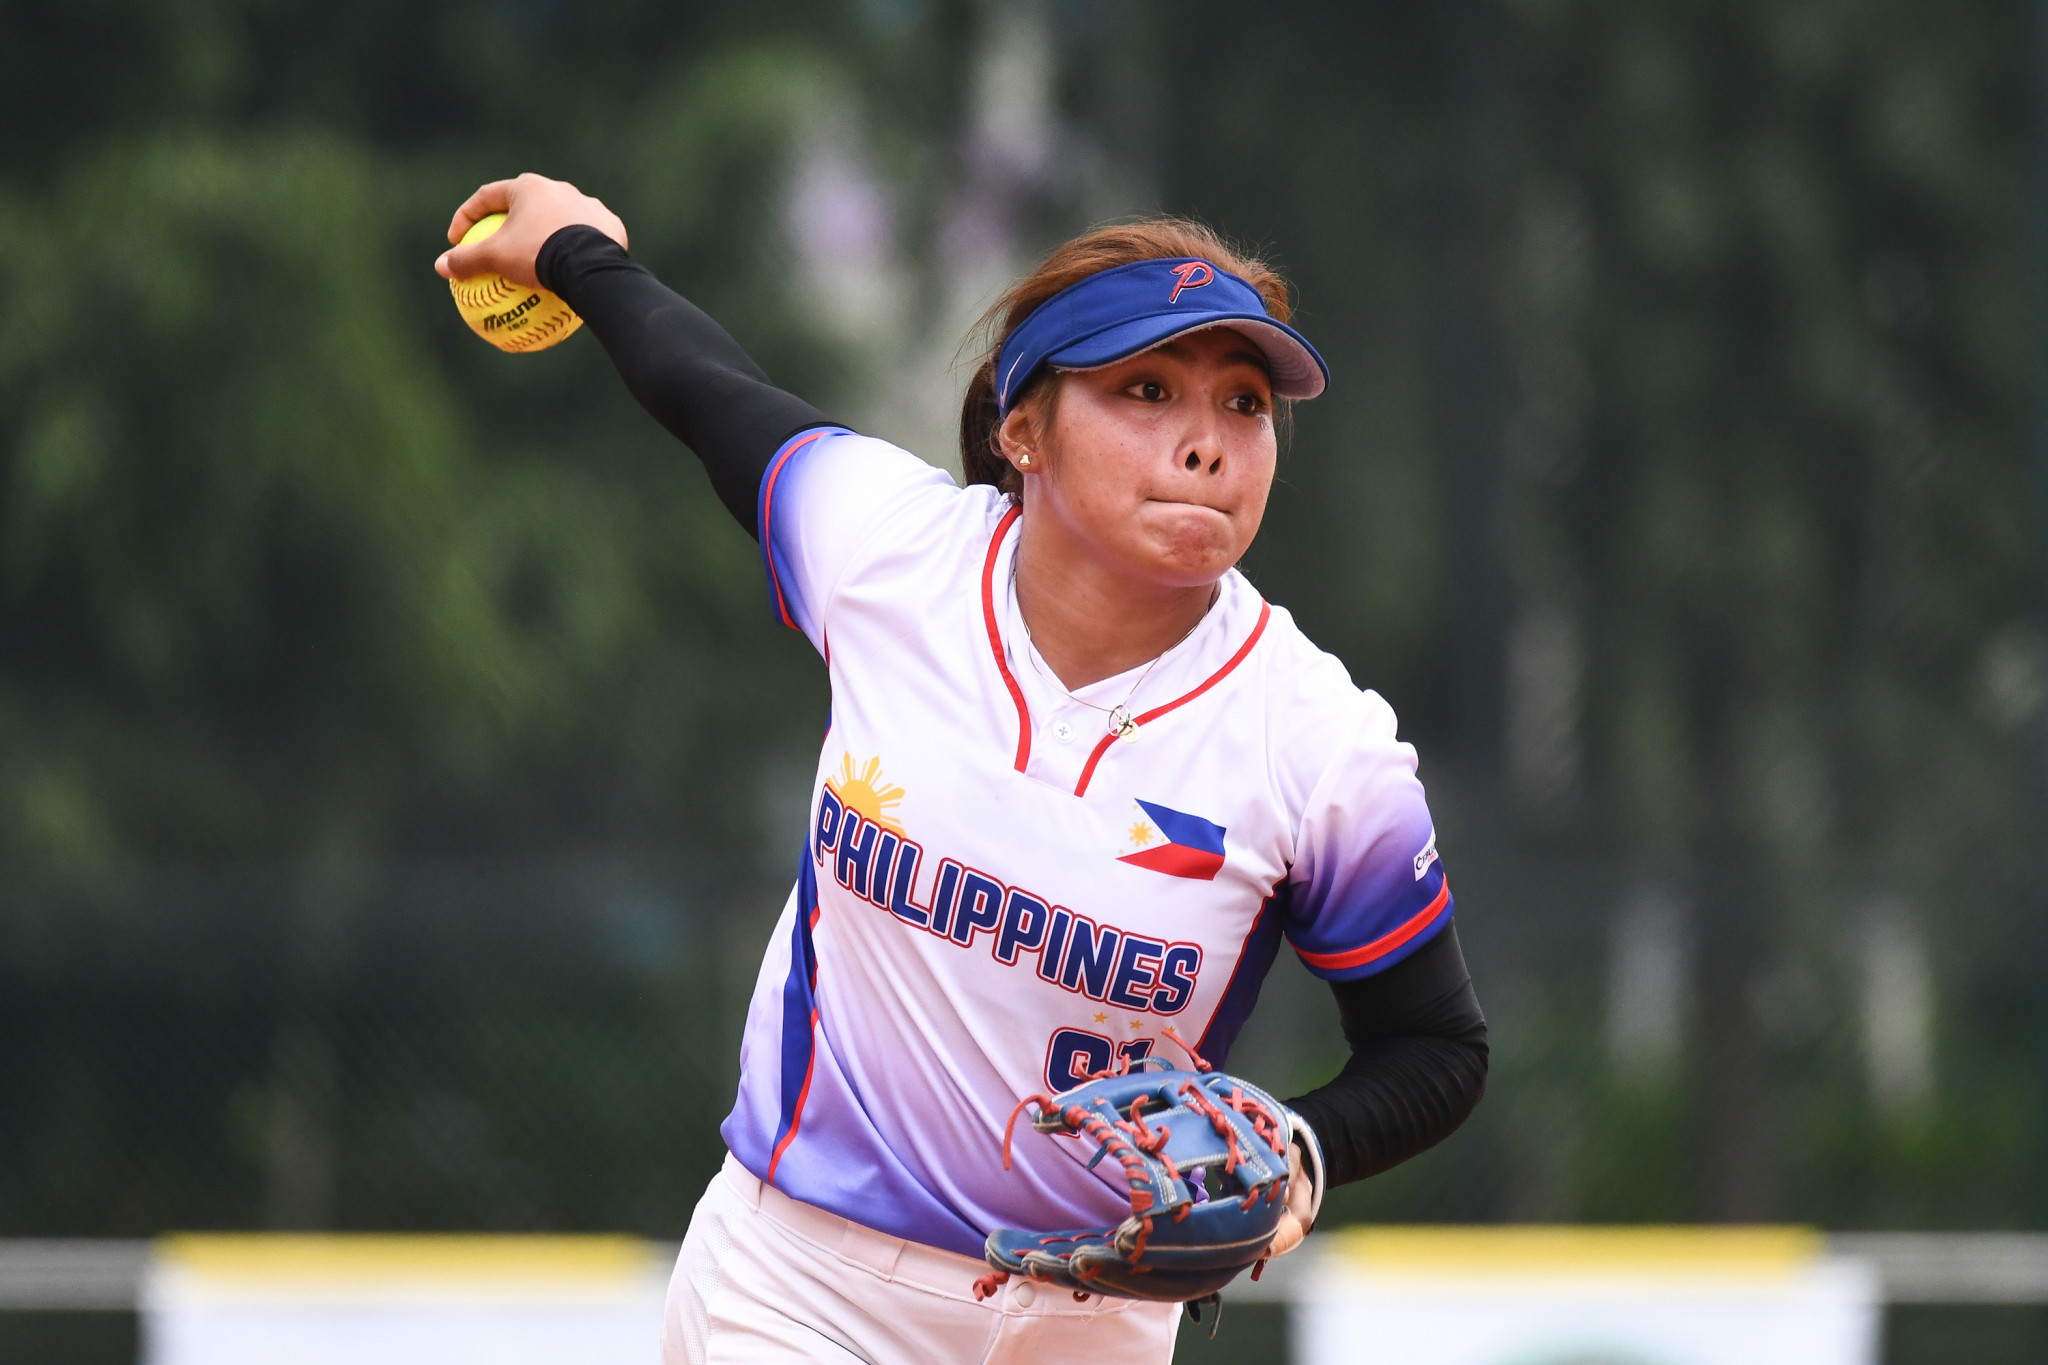 Hangzhou 2022 medal quest primary focus for Philippines softball team